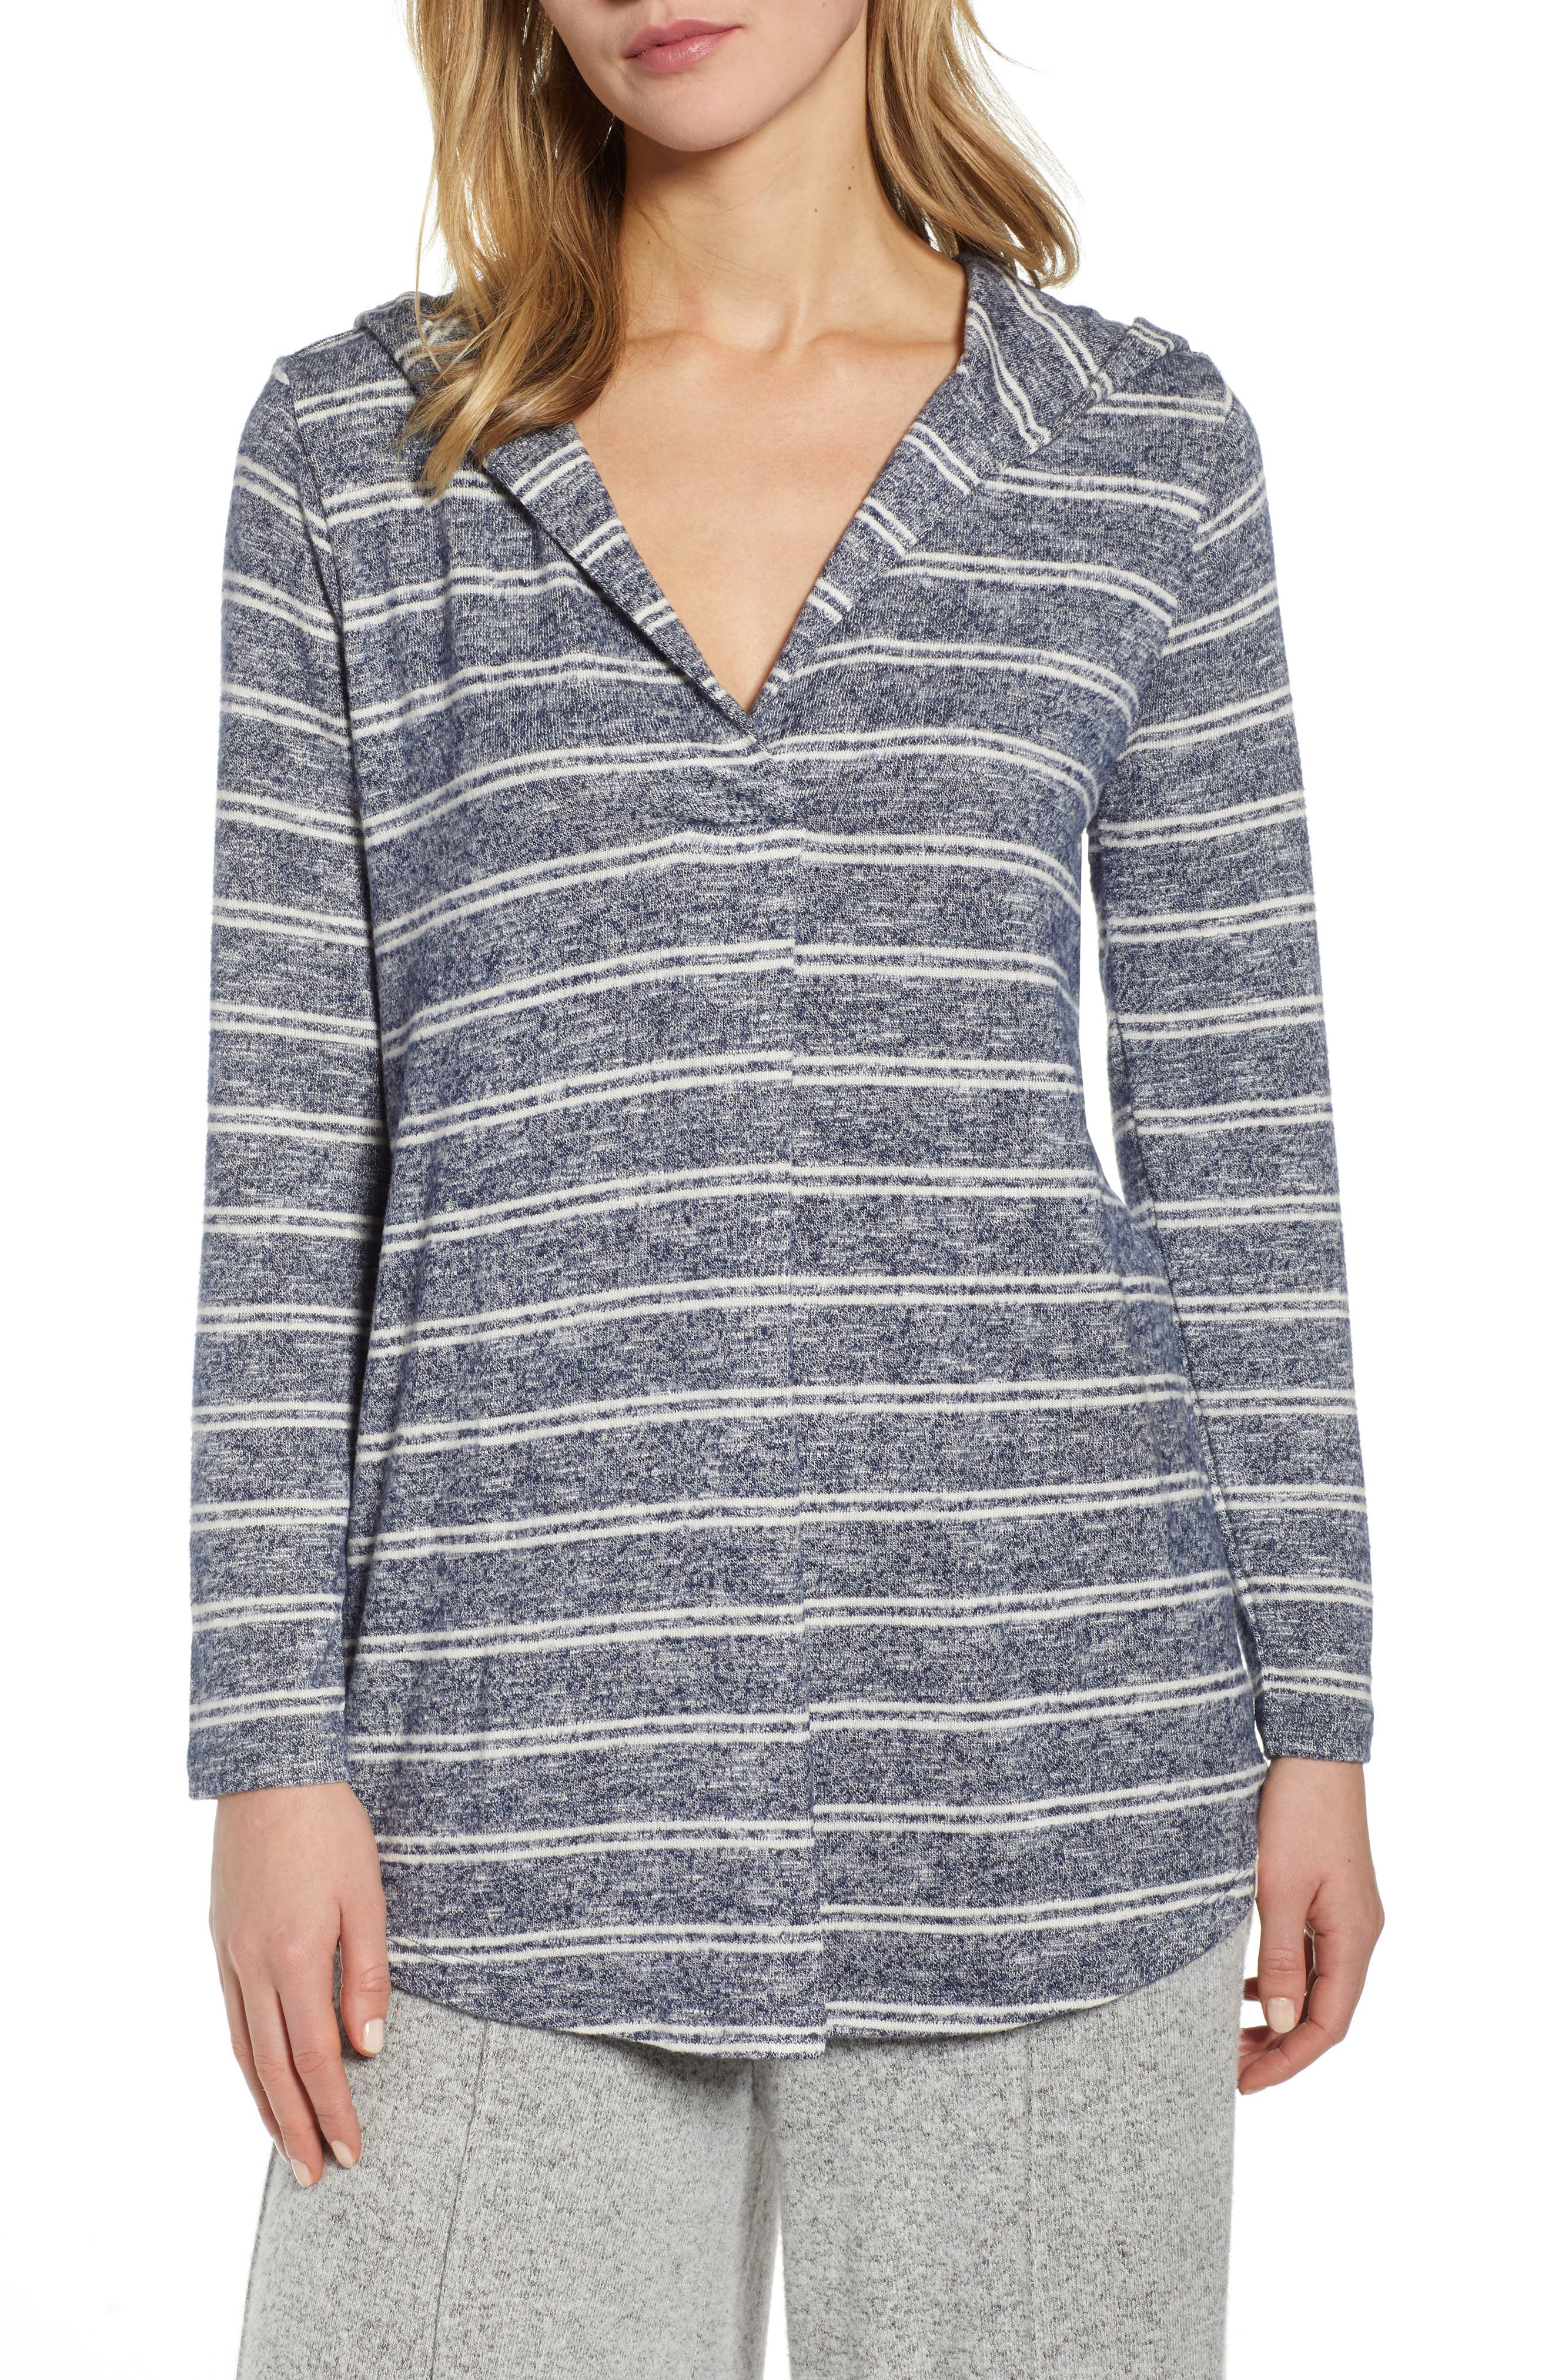 LOU & GREY Brushline Hooded Shirttail Top, Main, color, BLUE/ WHITE STRIPE AS HEADER